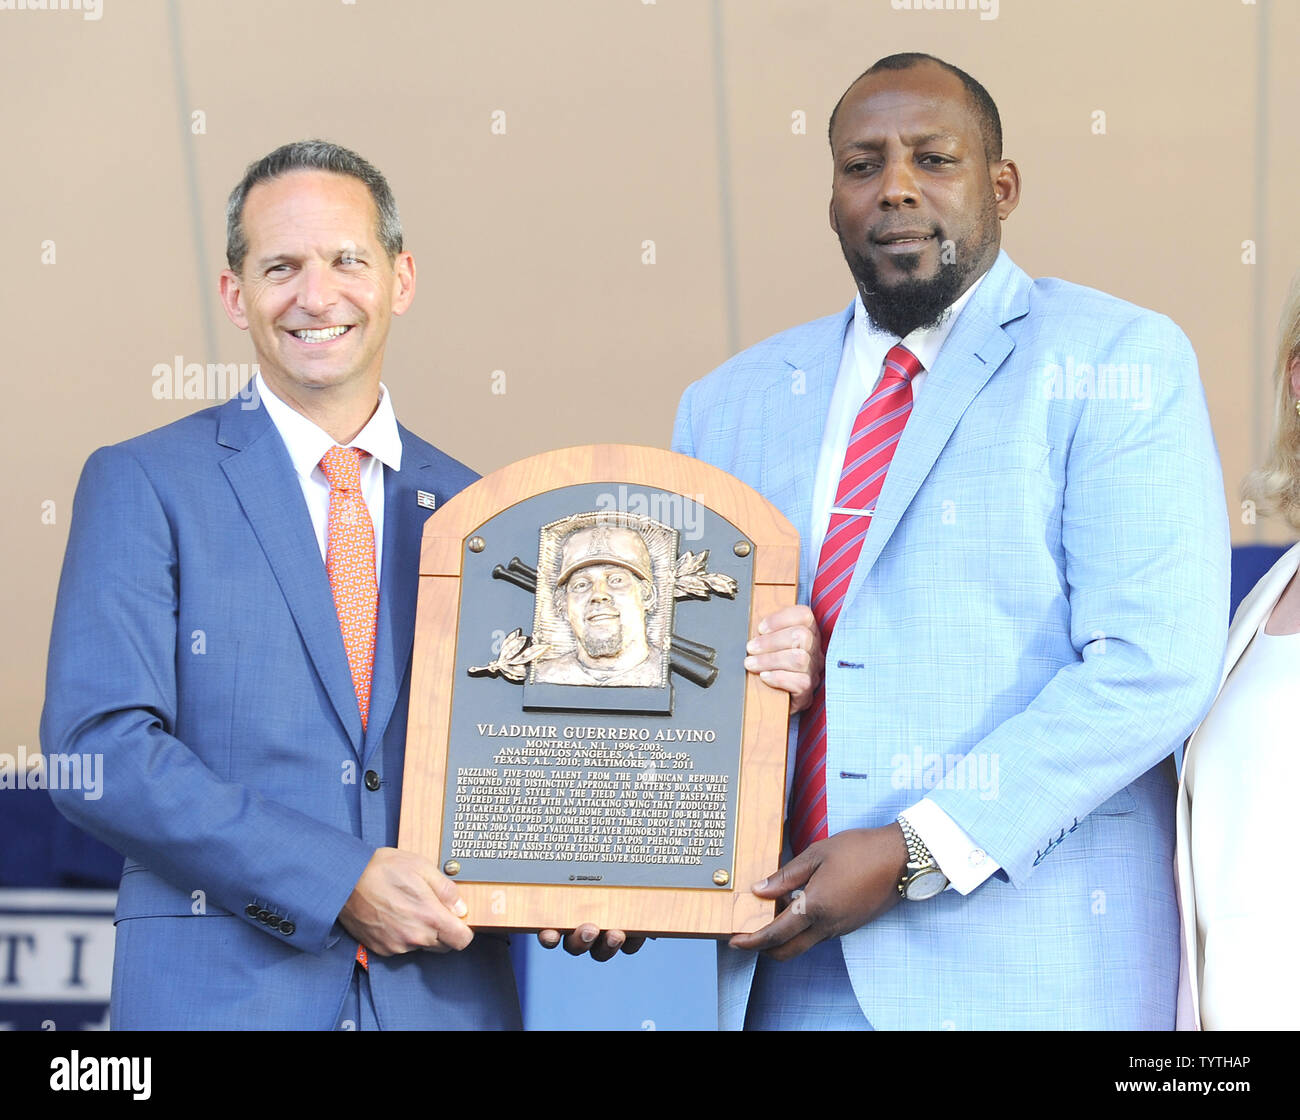 Vladmir Guerrero and President of the Baseball Hall of Fame Jeff Idelson holds his plaque before he delivers his  Baseball Hall of Fame induction speech at the Clark Sports Center in Cooperstown, NY on July 29, 2018.  A record 60 Hall of Famers are scheduled to be in Central New York to honor Vladimir Guerrero, Trevor Hoffman, Chipper Jones, Jack Morris, Jim Thome and Alan Trammell at the National Baseball Hall of Fame and Museum during Hall of Fame Weekend on July 27-30.     Photo by George Napolitano/UPI - Stock Image